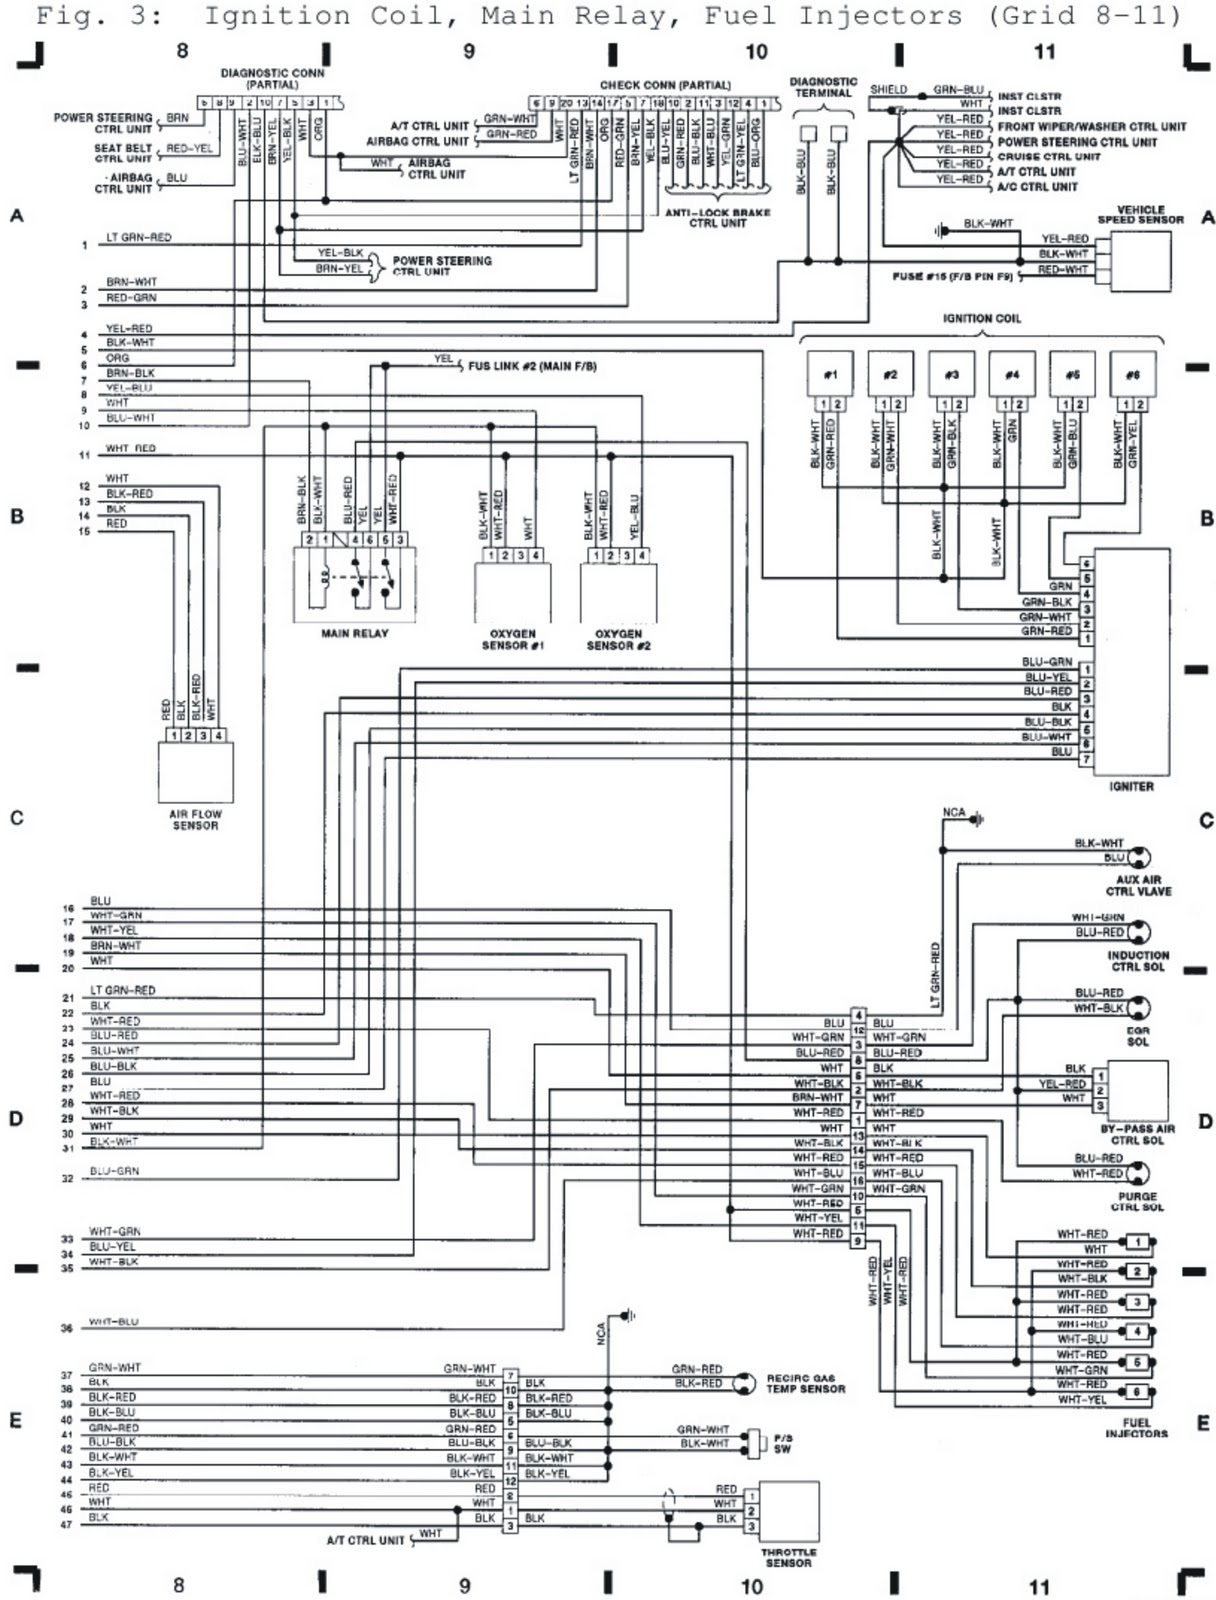 January 2012 Schematic Wiring Diagrams Solutions Wire Diagram For Ford Fiesta 1992 Subaru Ignition Coil Main Relay Fuel Injectors System